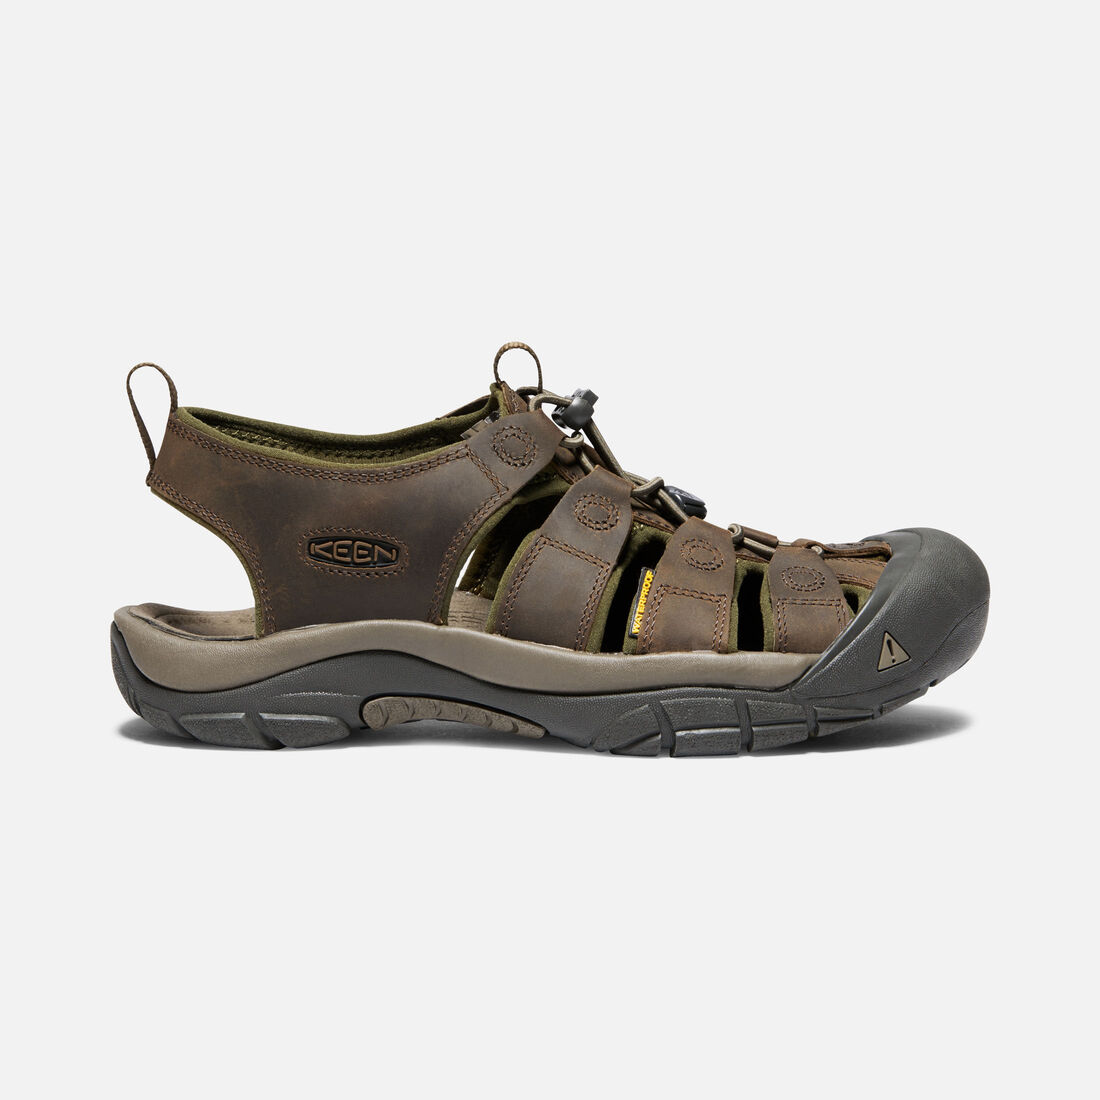 Men's Newport in CANTEEN/DARK OLIVE - large view.